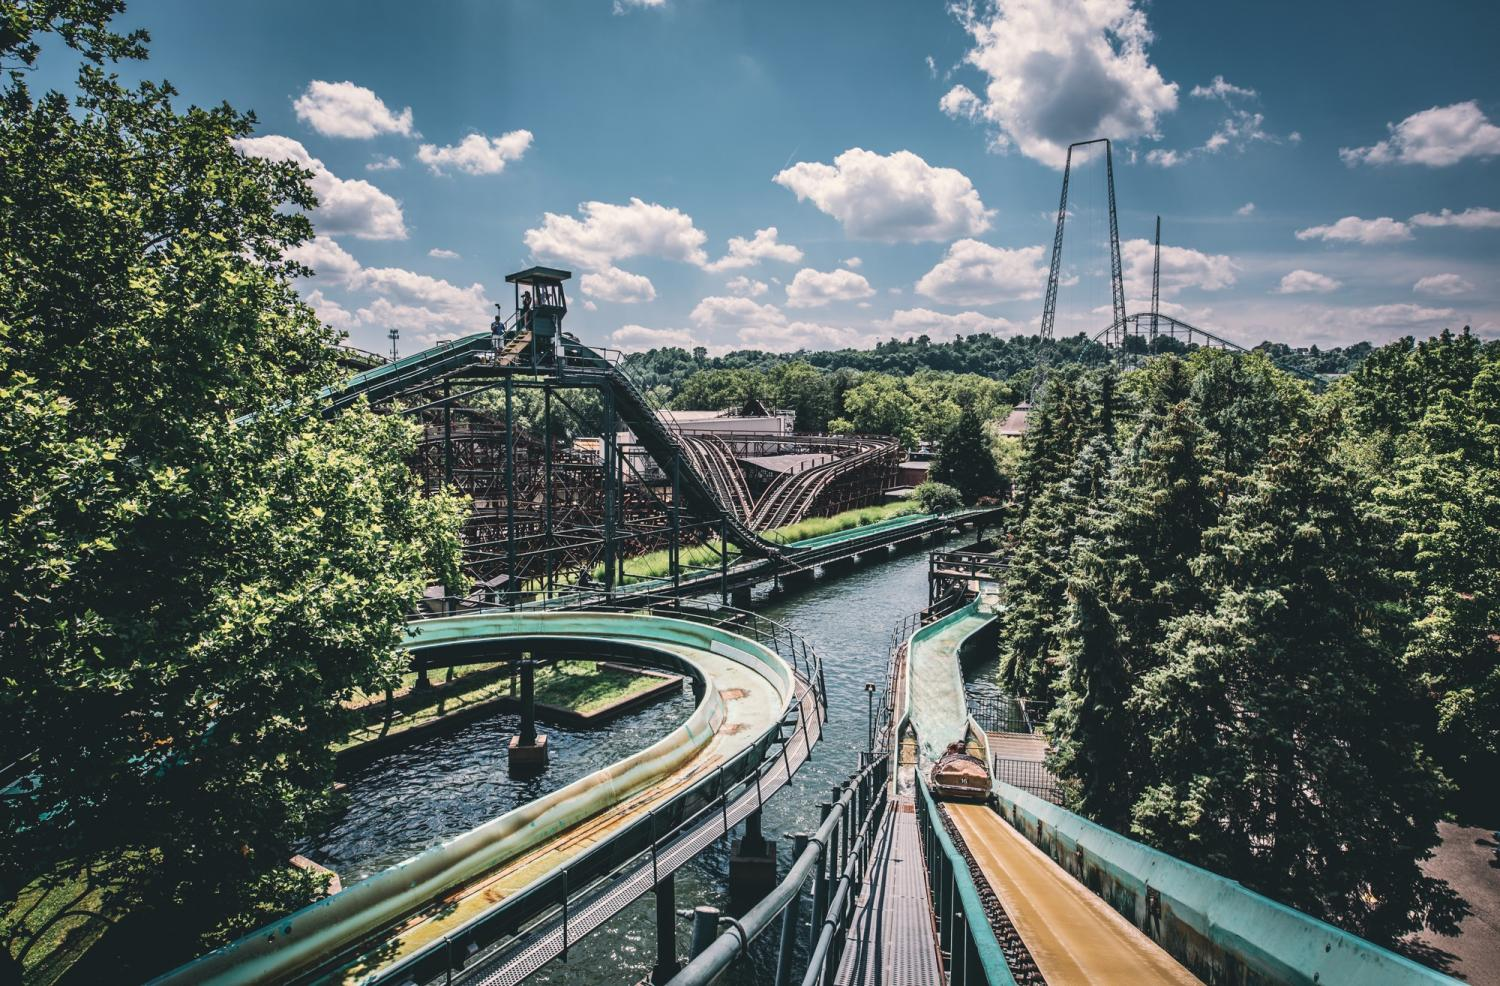 Processed with VSCO with e5 preset Photo credit: Kennywood Park